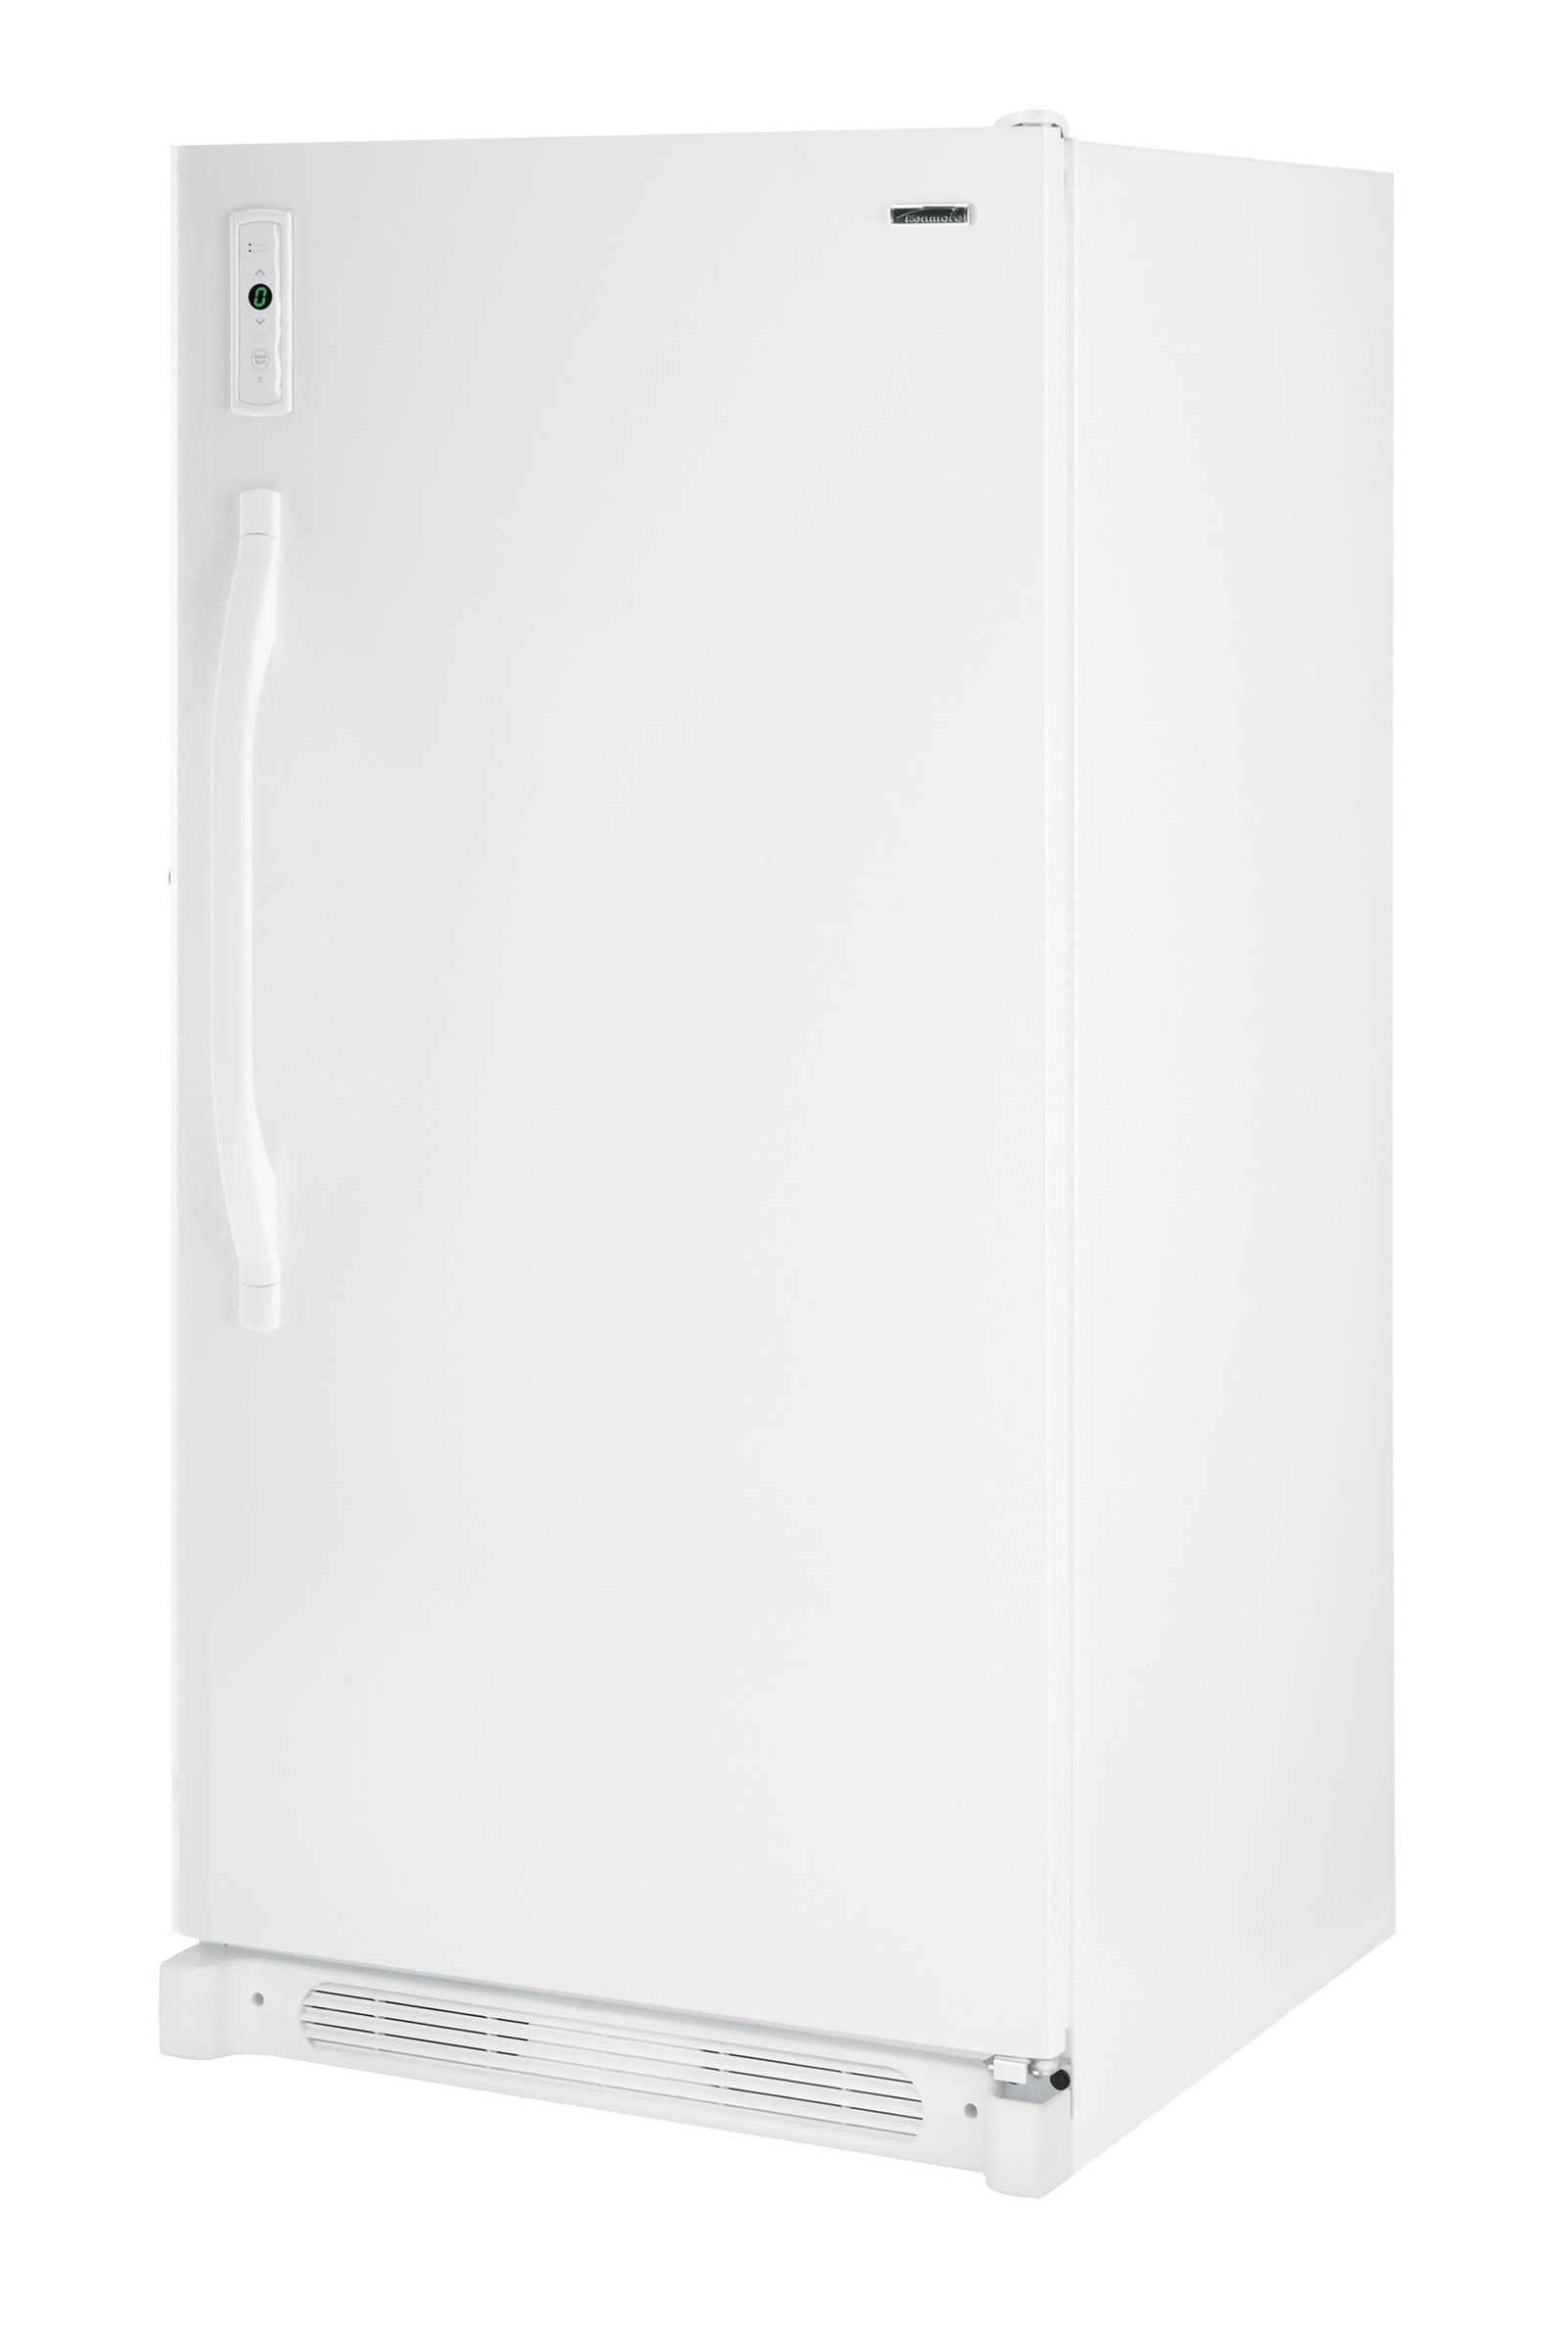 Kenmore 20.6 cu. ft. Upright Freezer